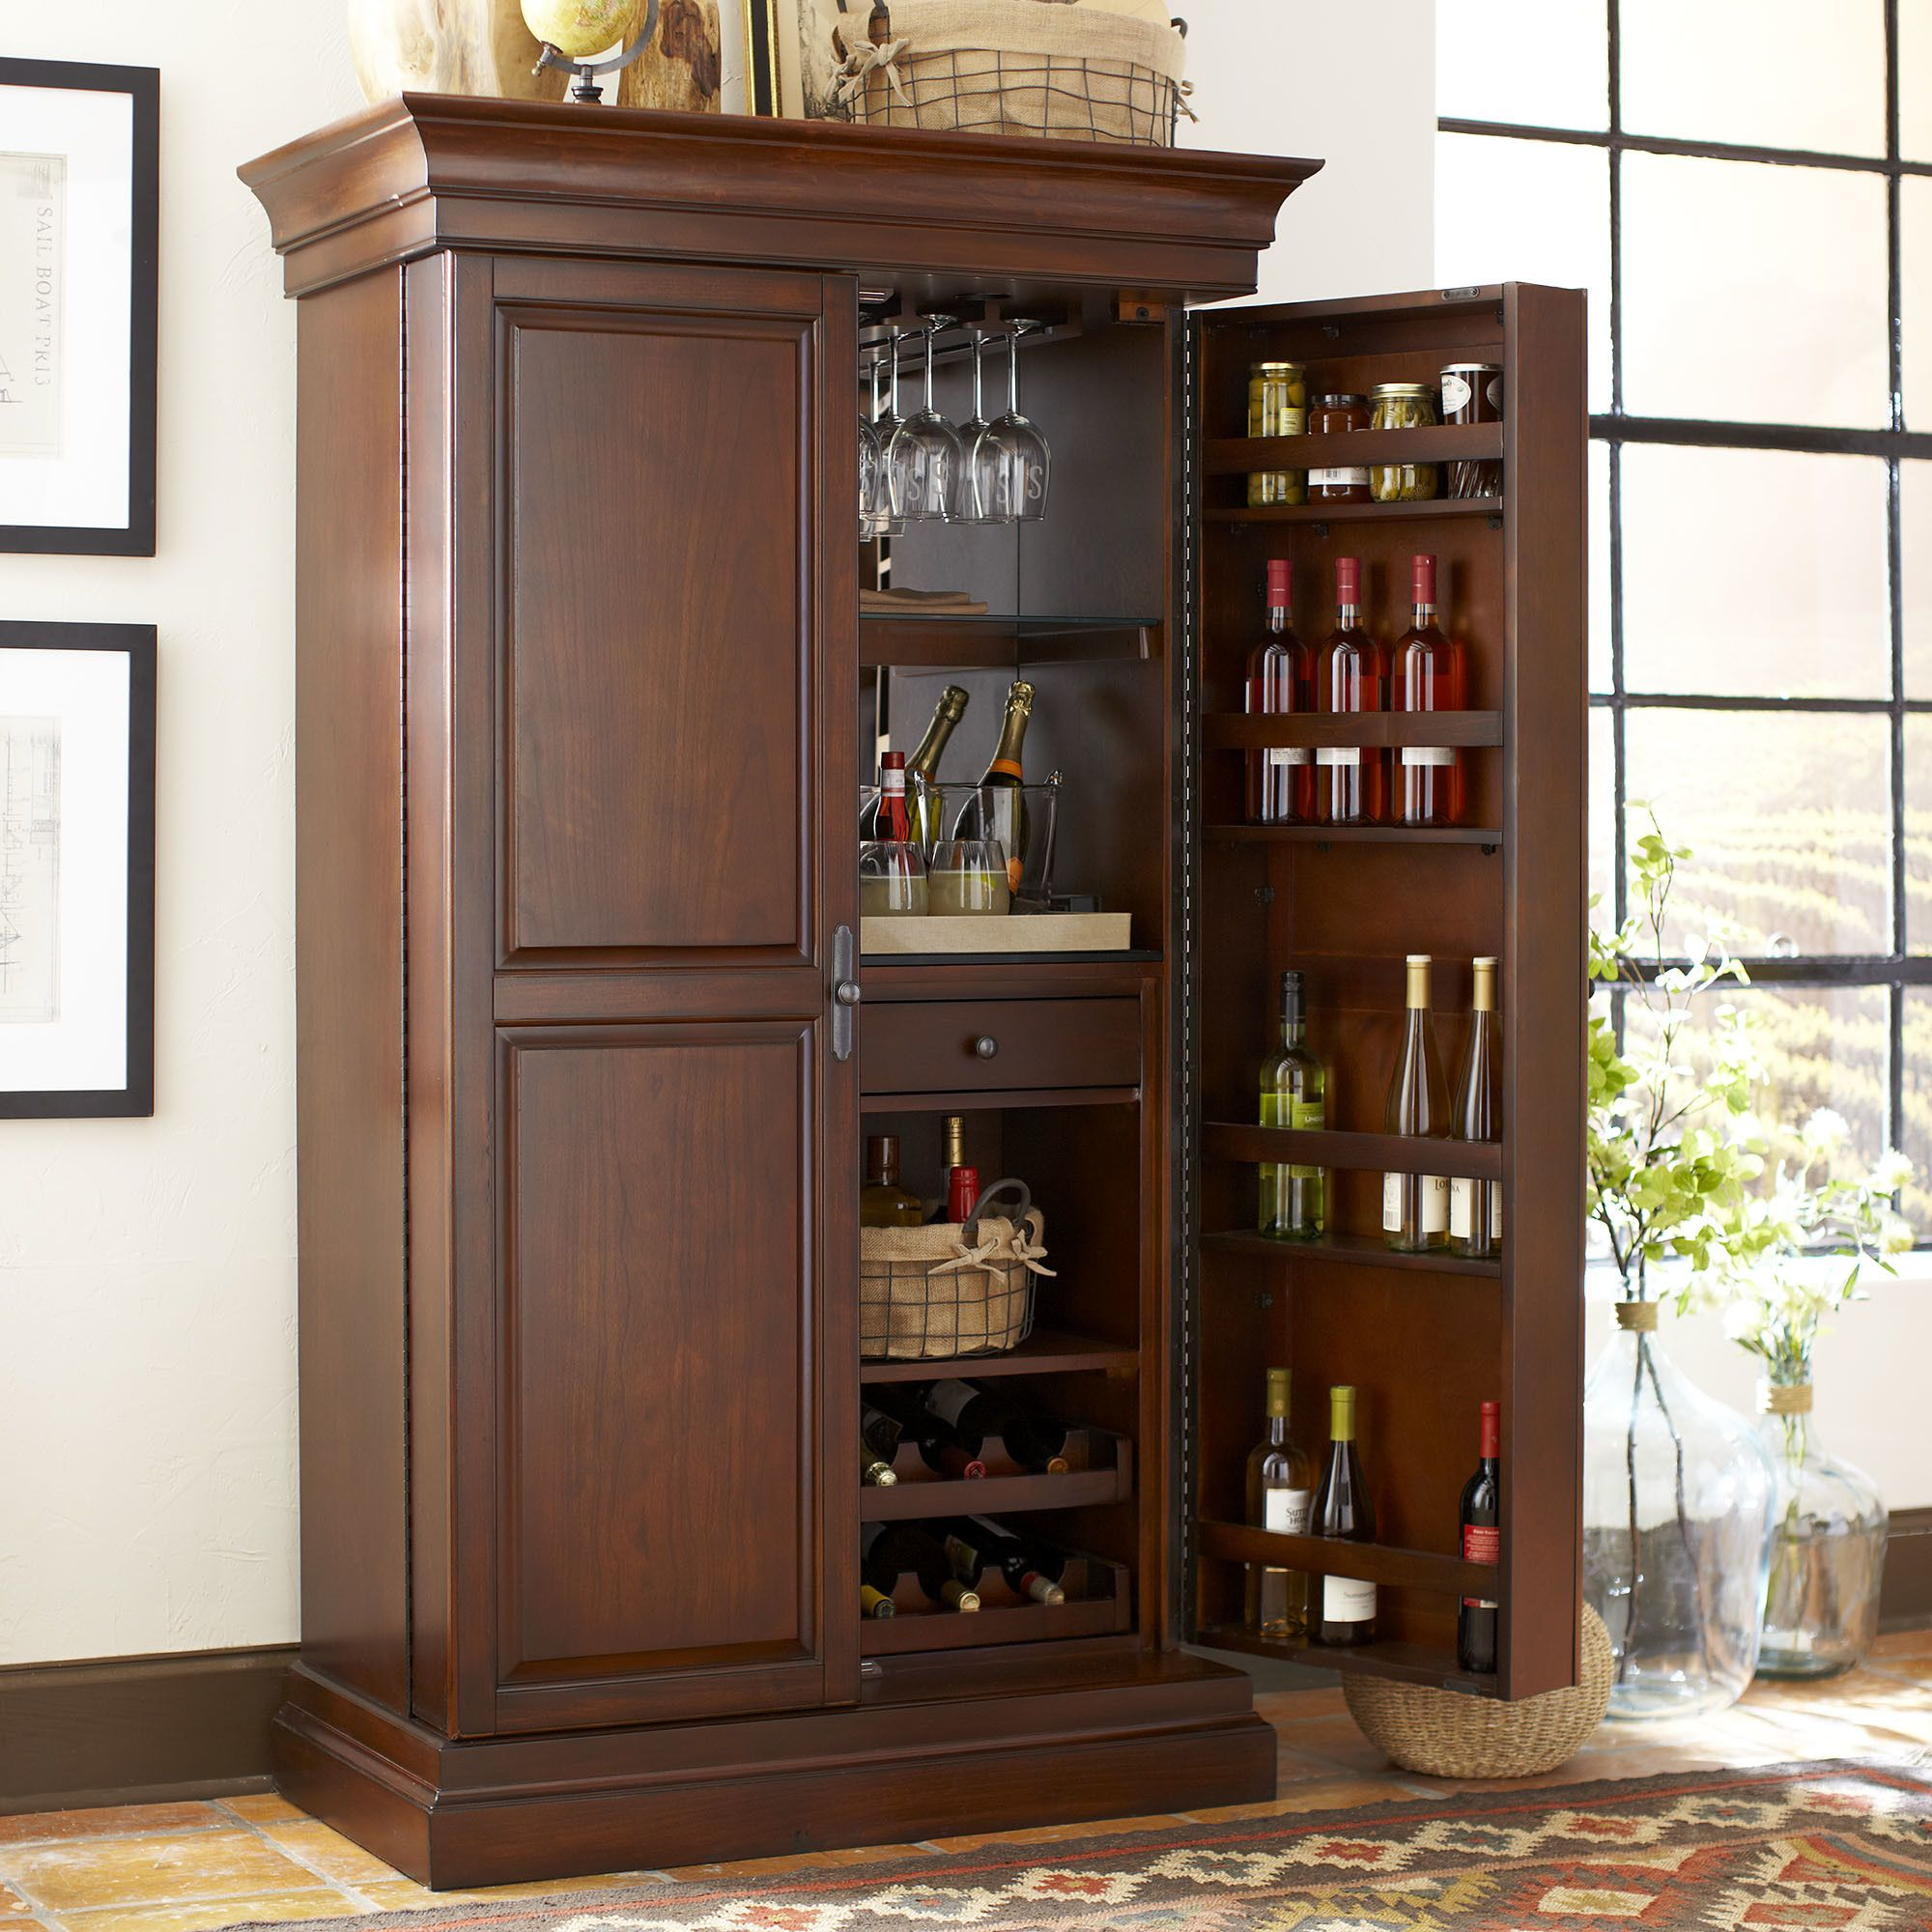 cabinet wine furniture bar coppedge select wayfair brew reviews pdx foundry